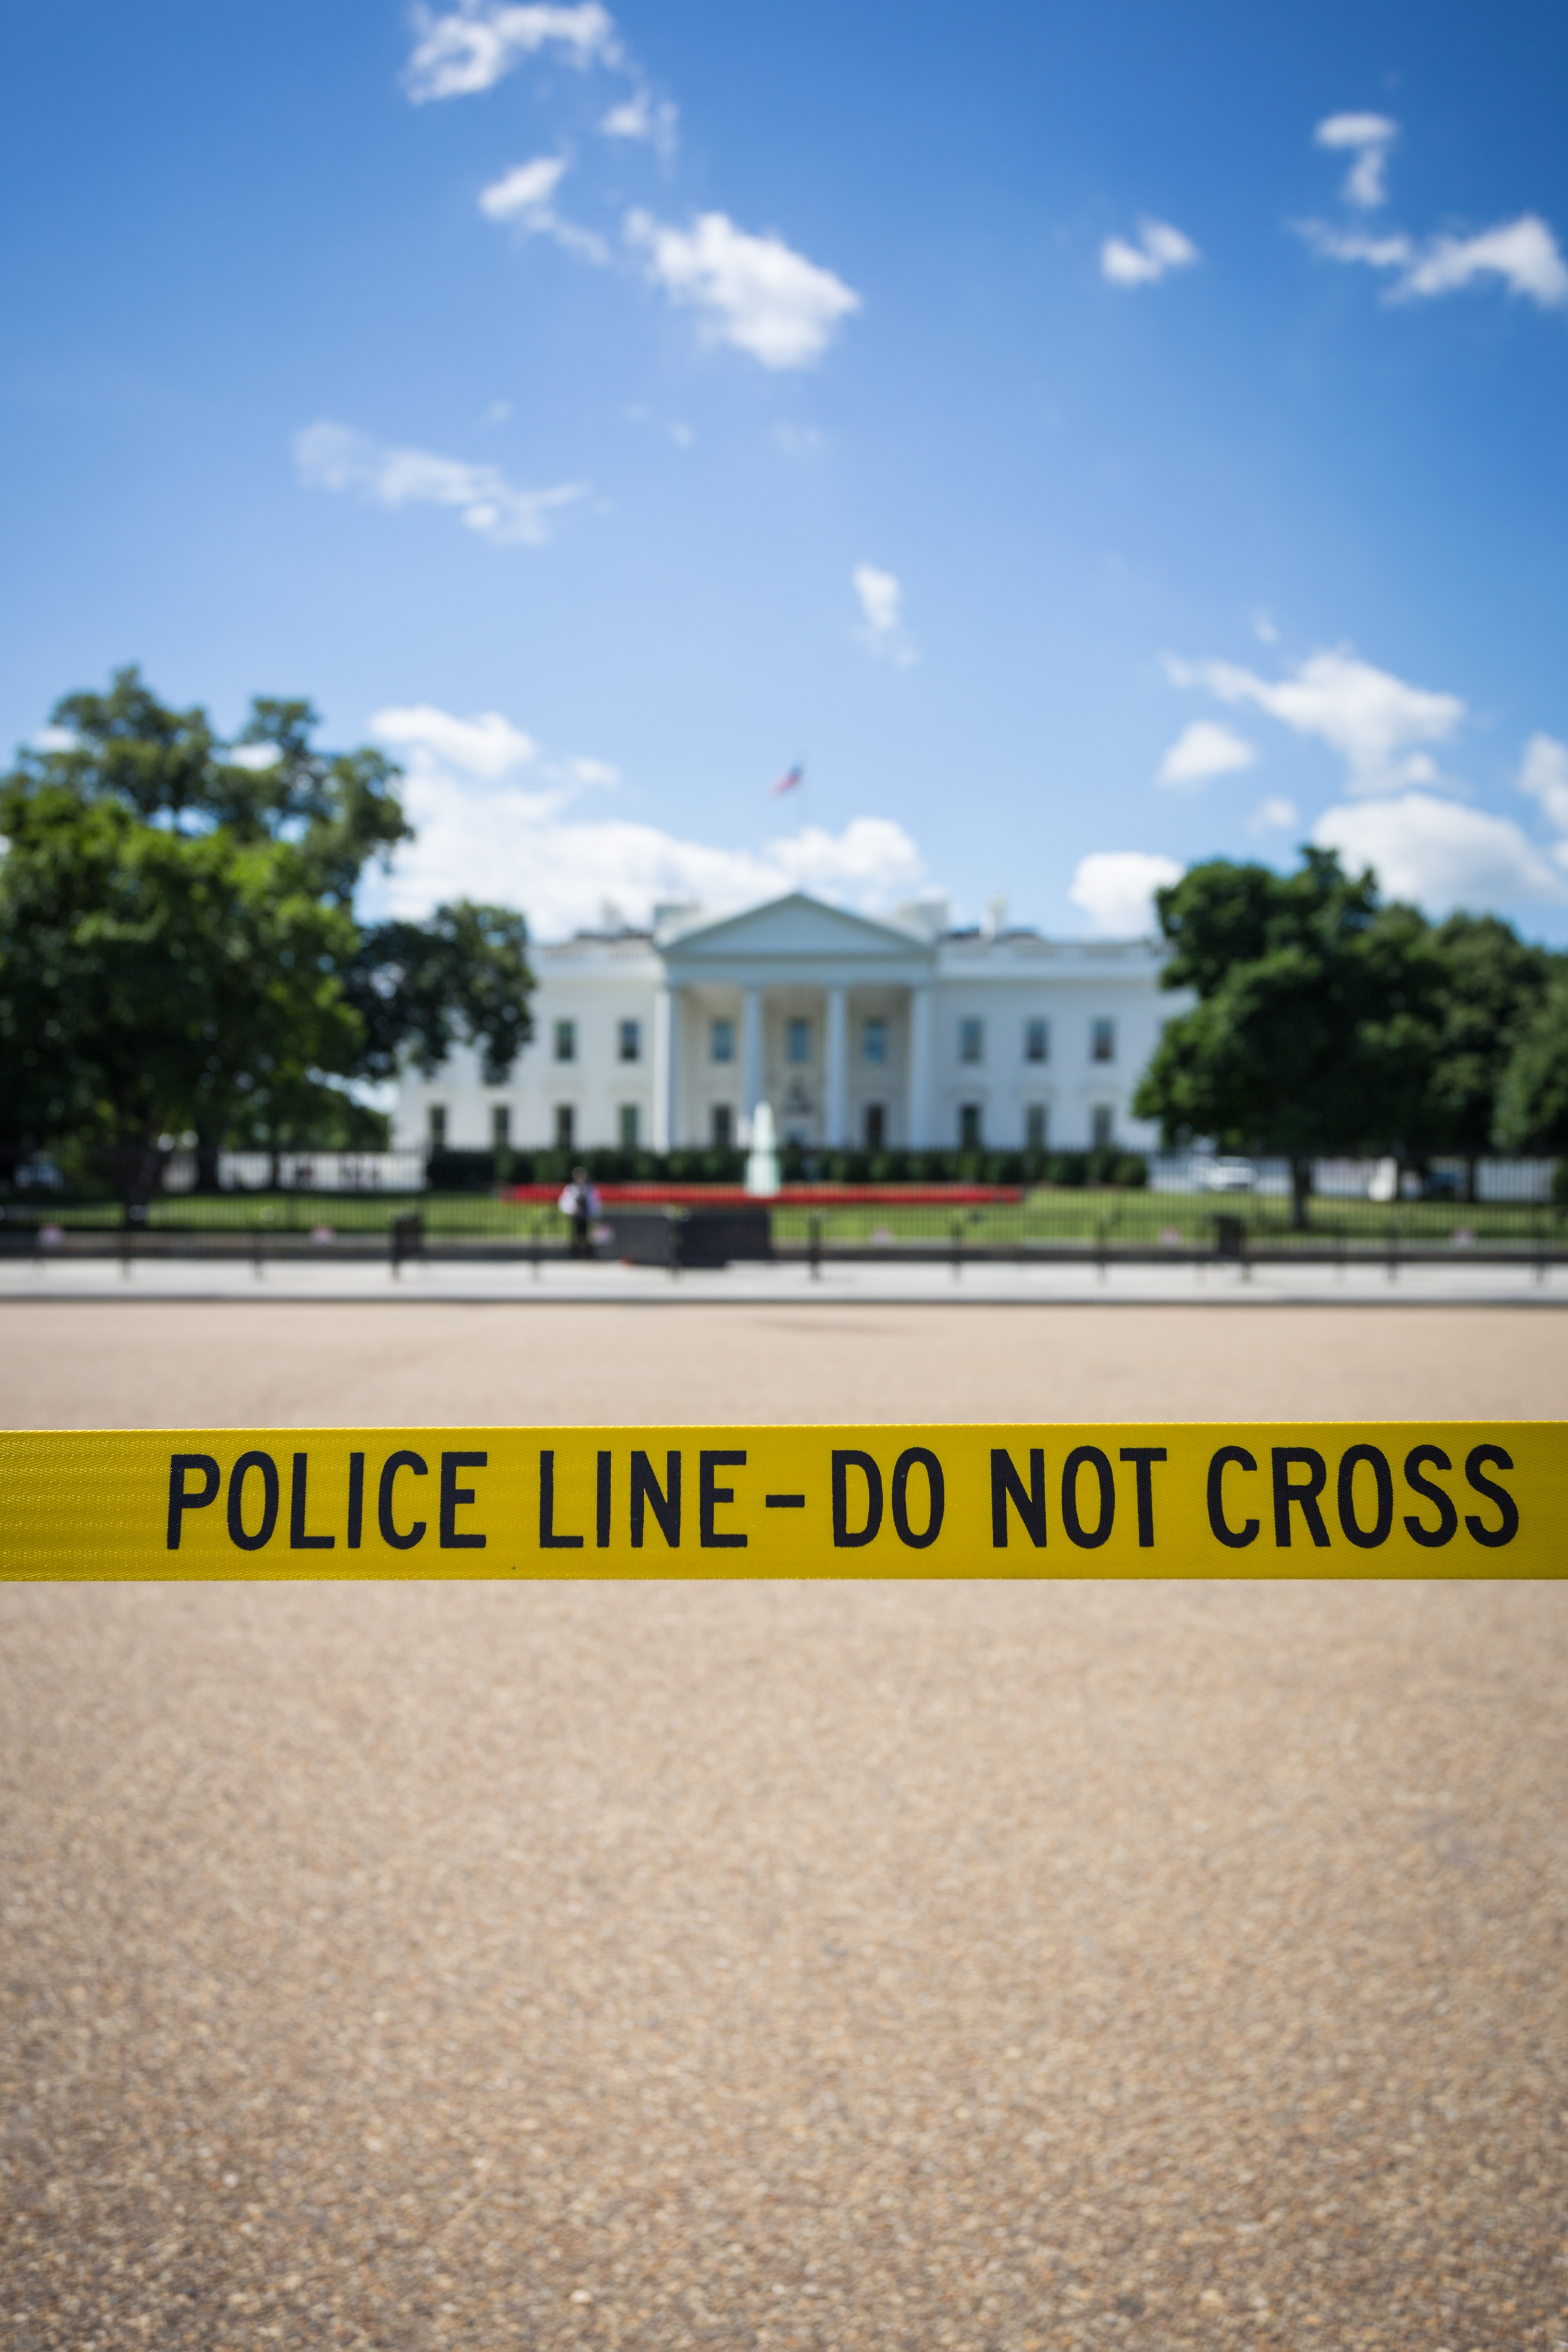 The White house in the USA taped off with police tape and a blue sky